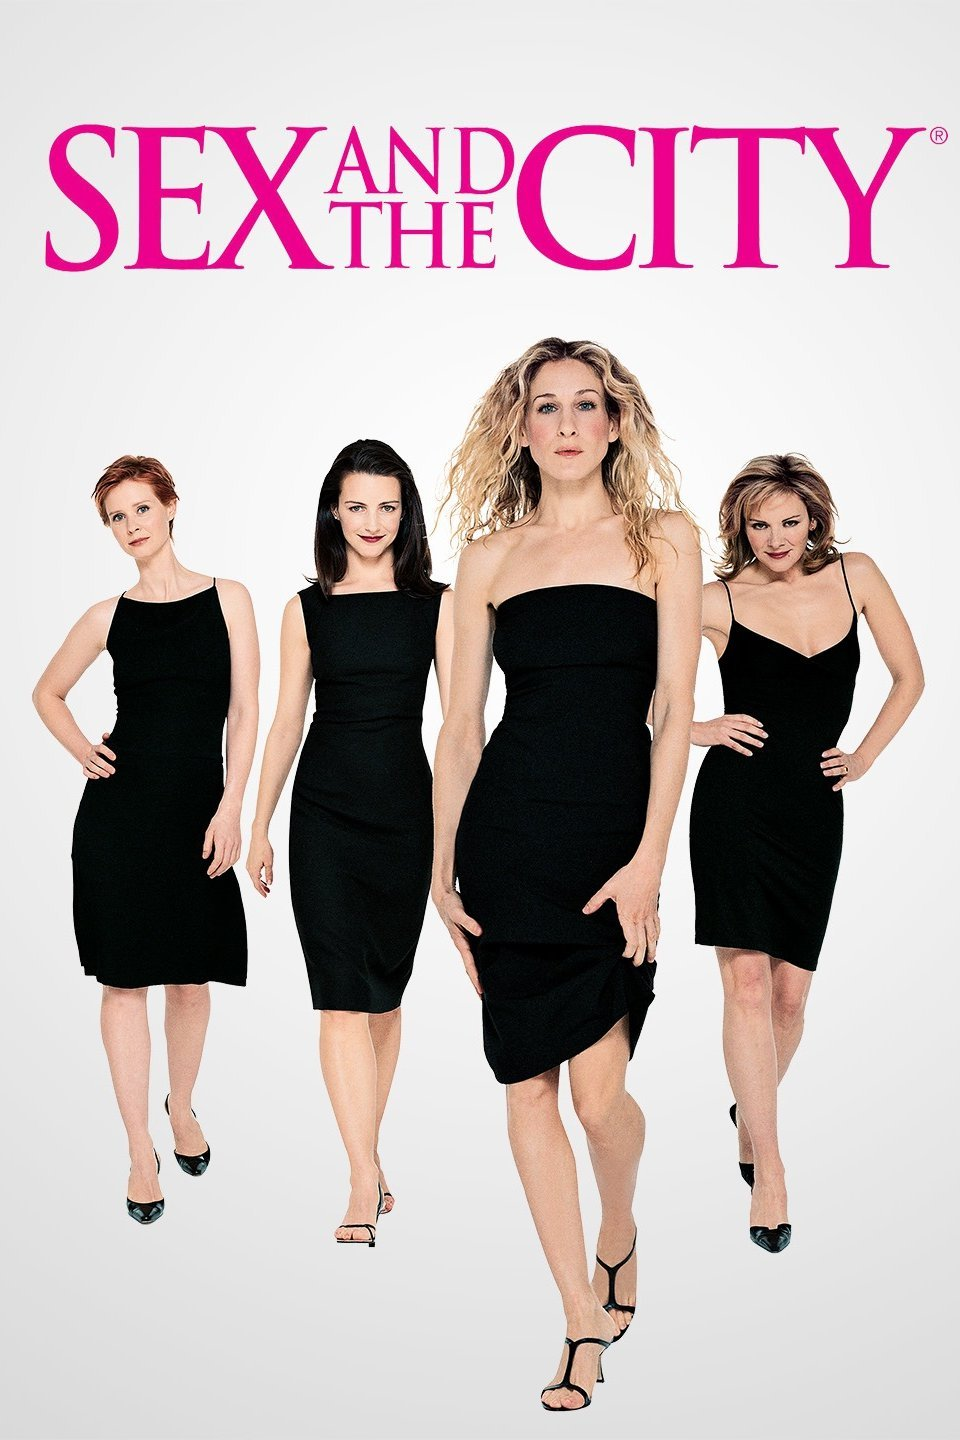 Sex and the city season 2 episode guide